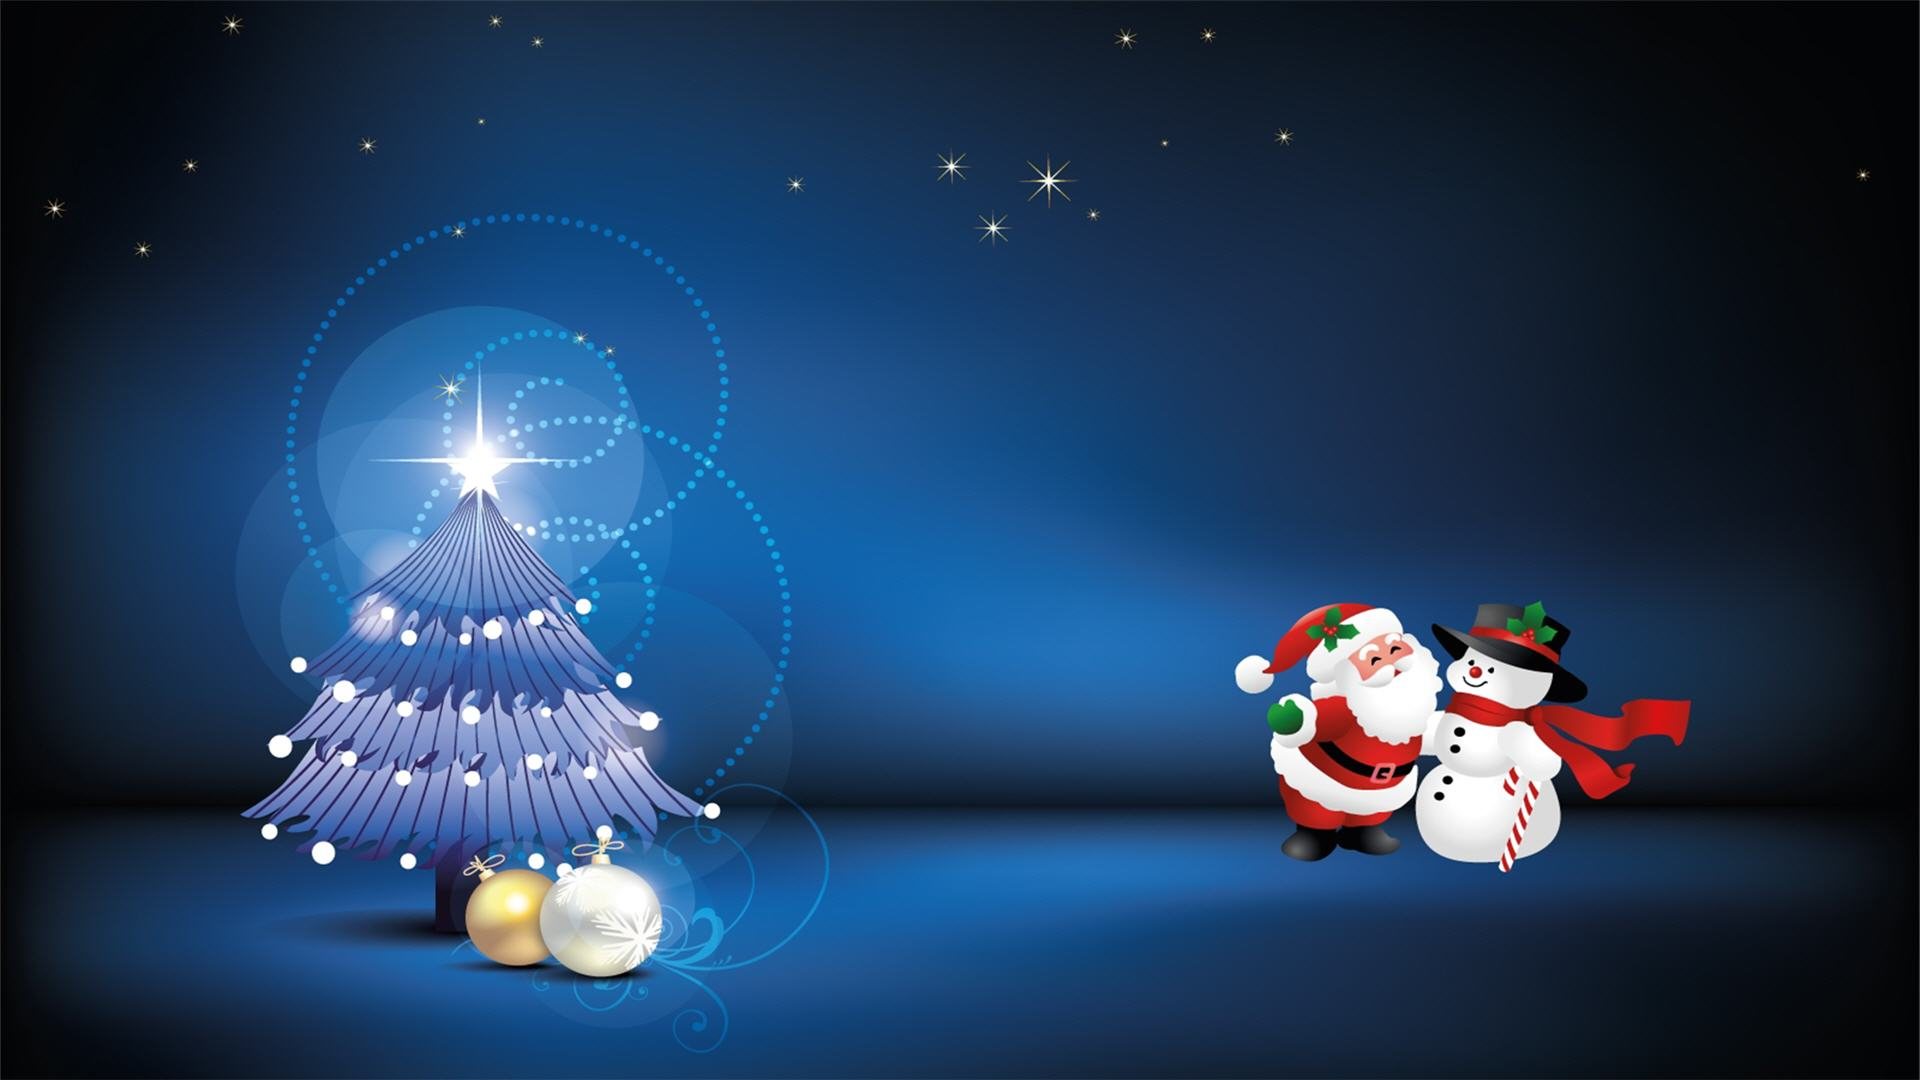 Best Christmas Wallpapers For Desktop Apps Directories 1920x1080